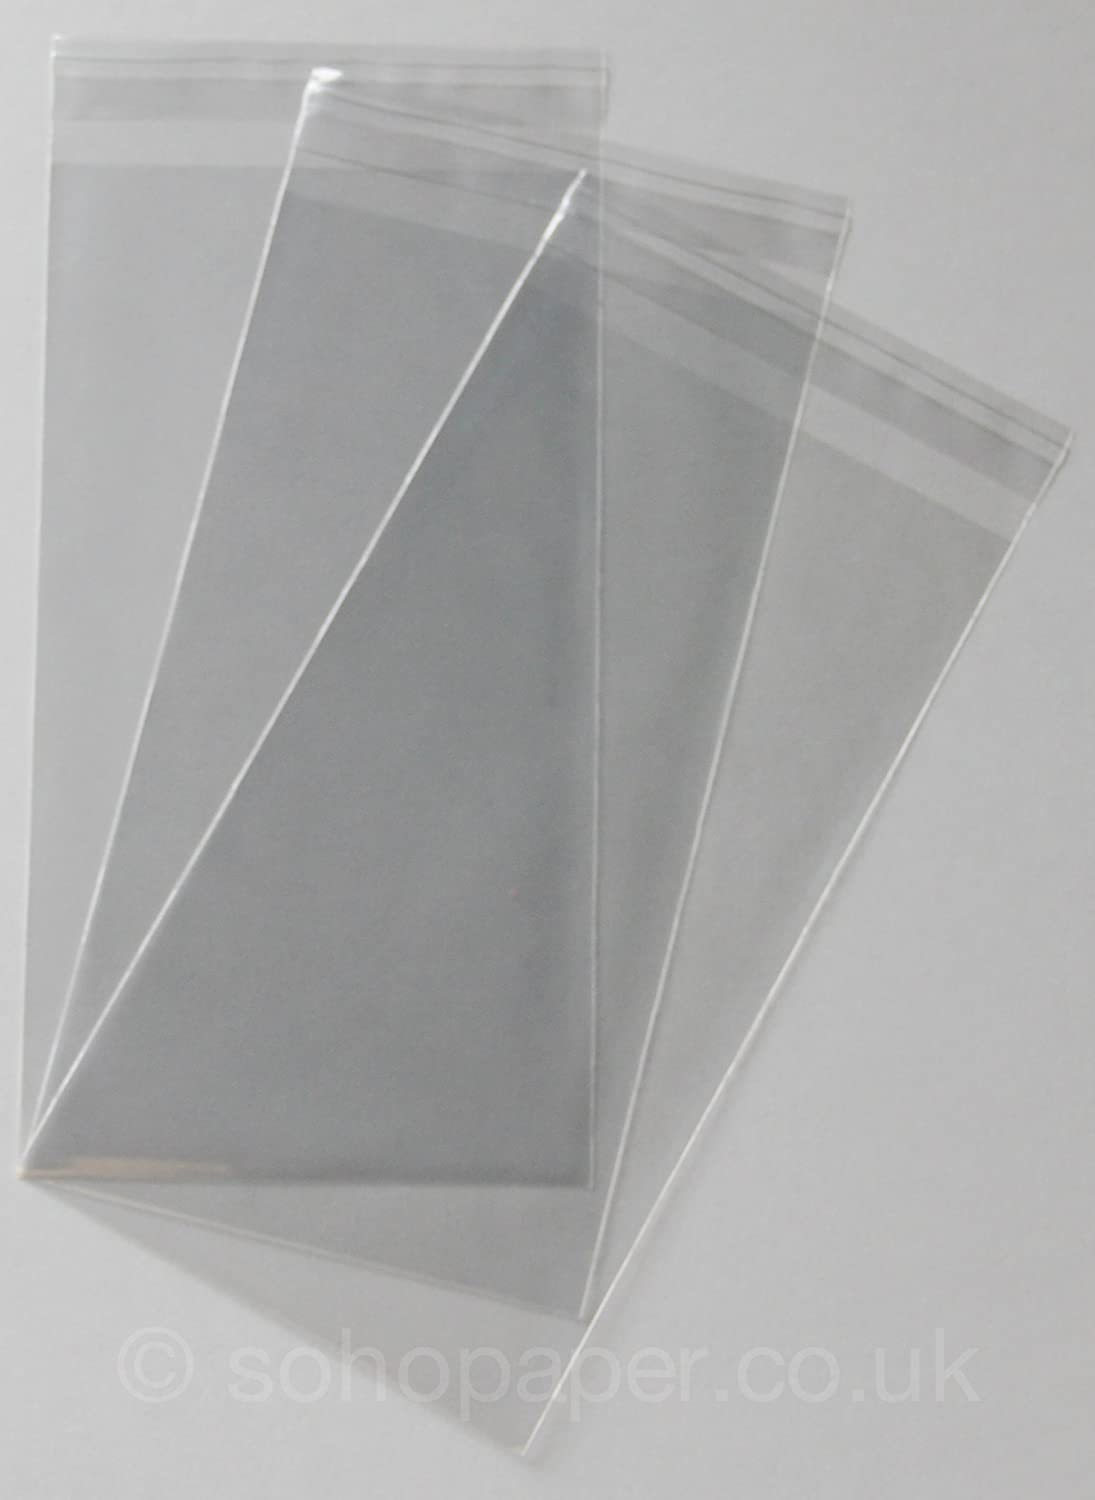 Cello Bags 125 x 230mm + 30mm Lip Self Seal packed in 100's Soho Paper Products